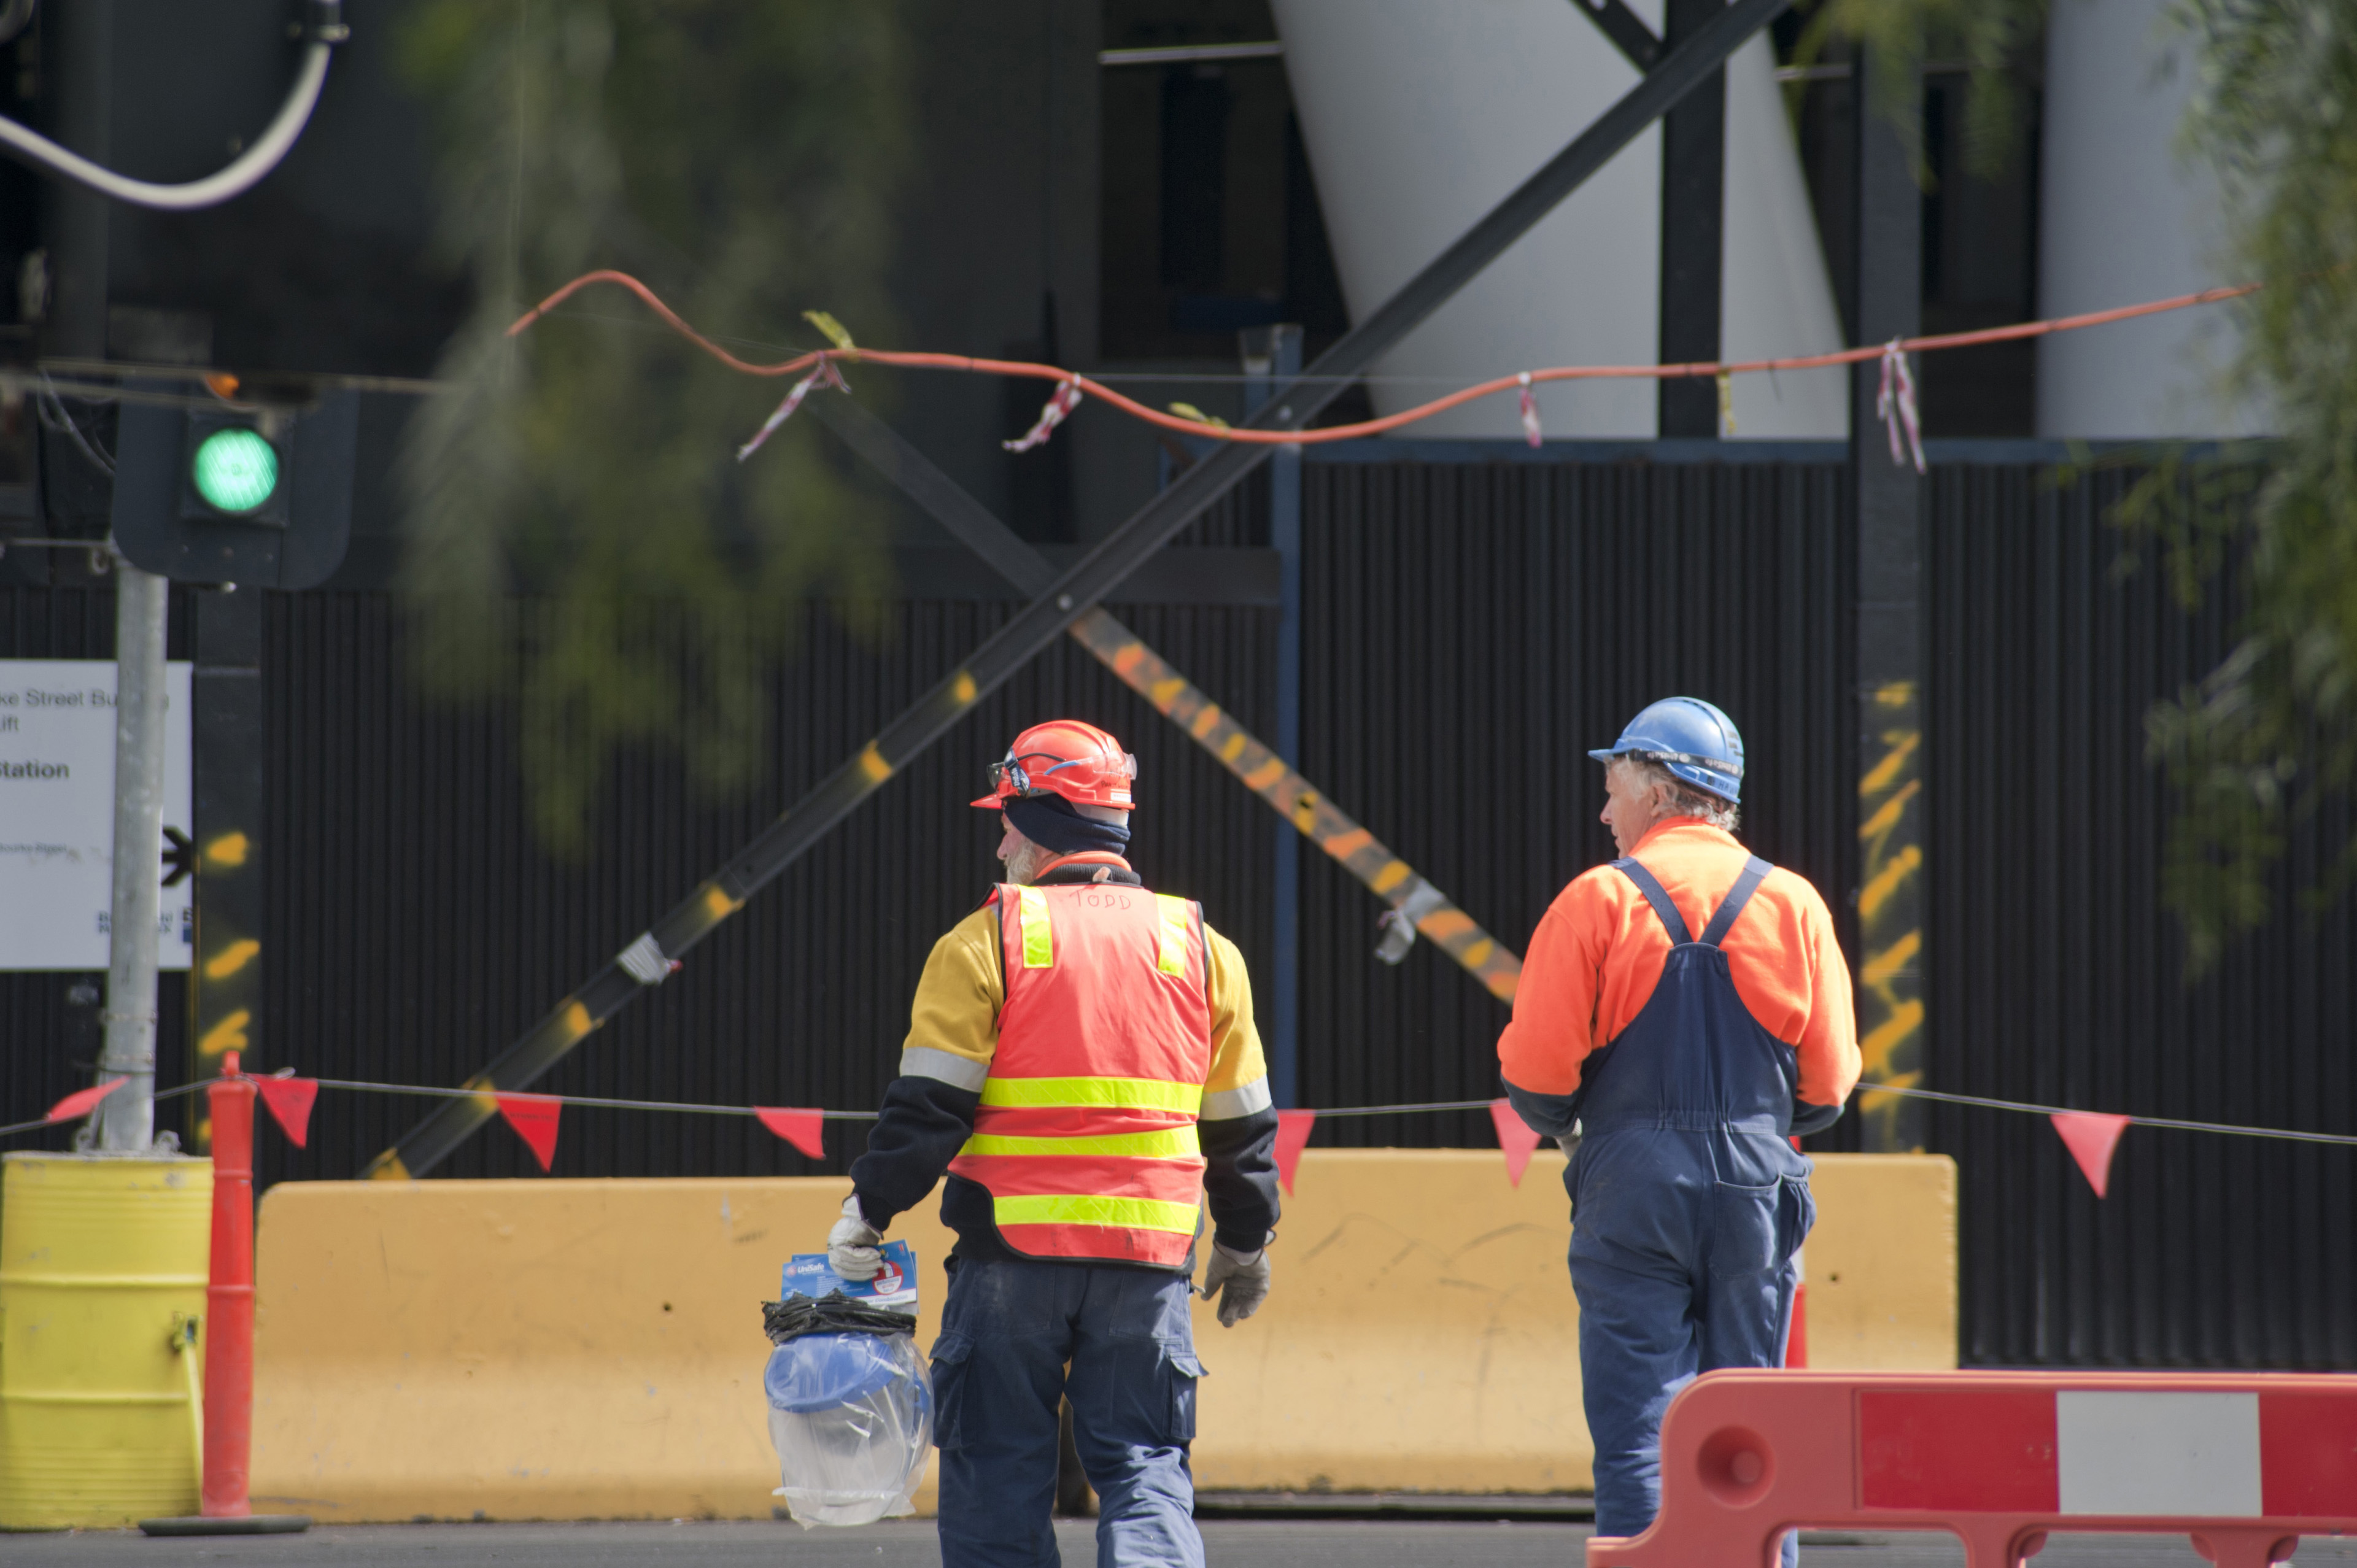 Two construction workers on a road crew standing on a building site with their backs to the camera watching for traffic with a green light in the background